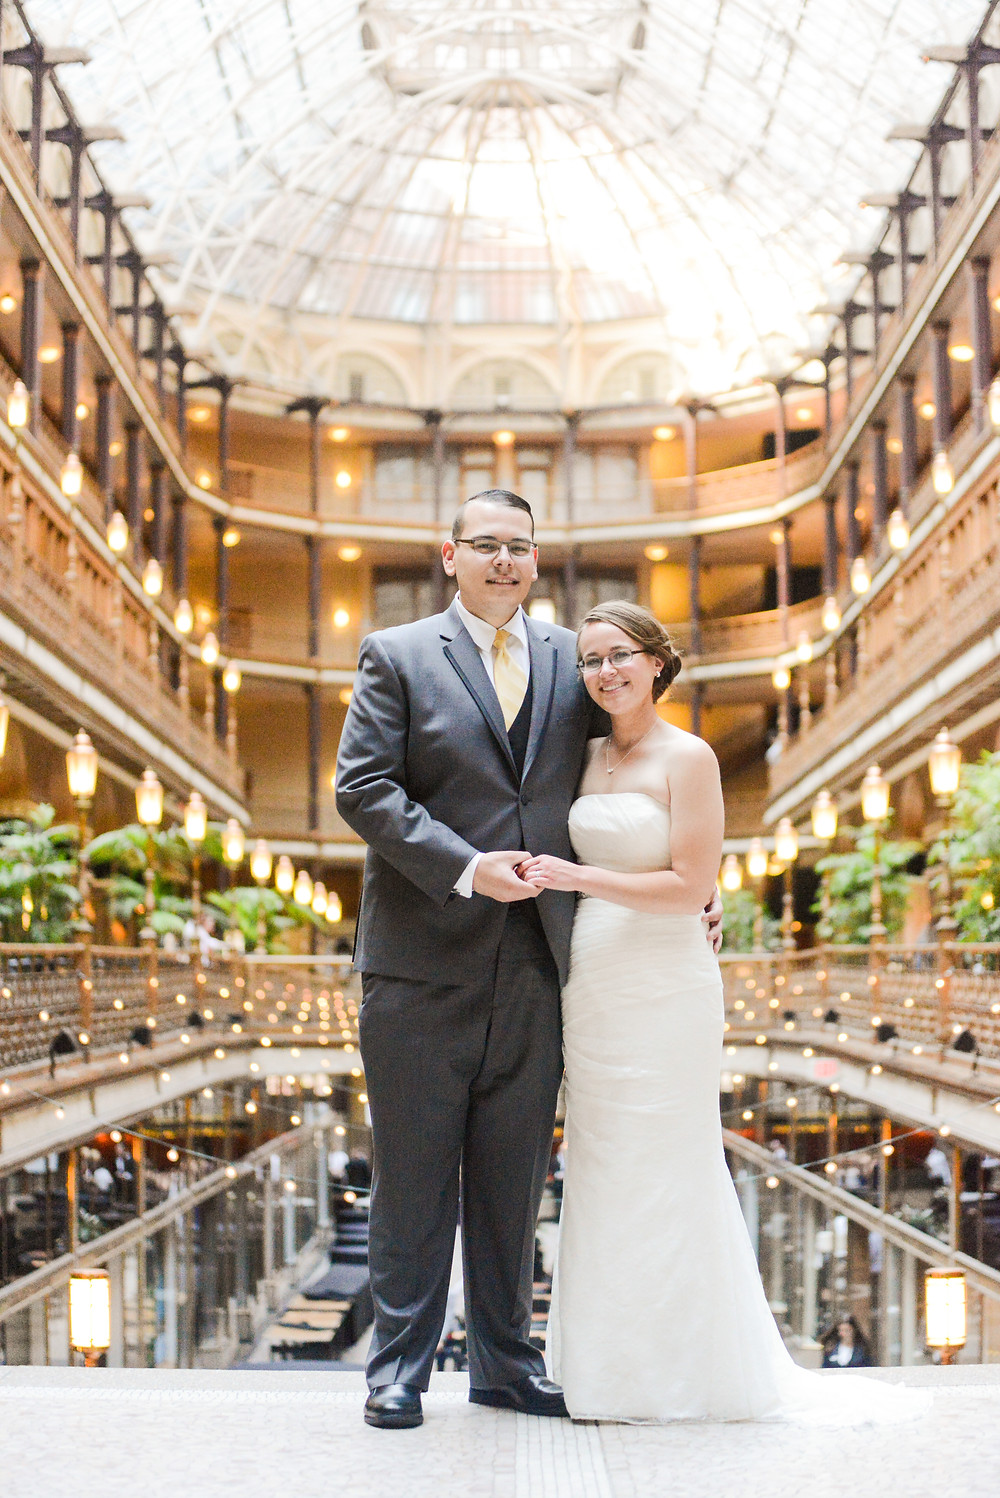 Bride and groom standing in the Cleveland Arcade in downtown Cleveland